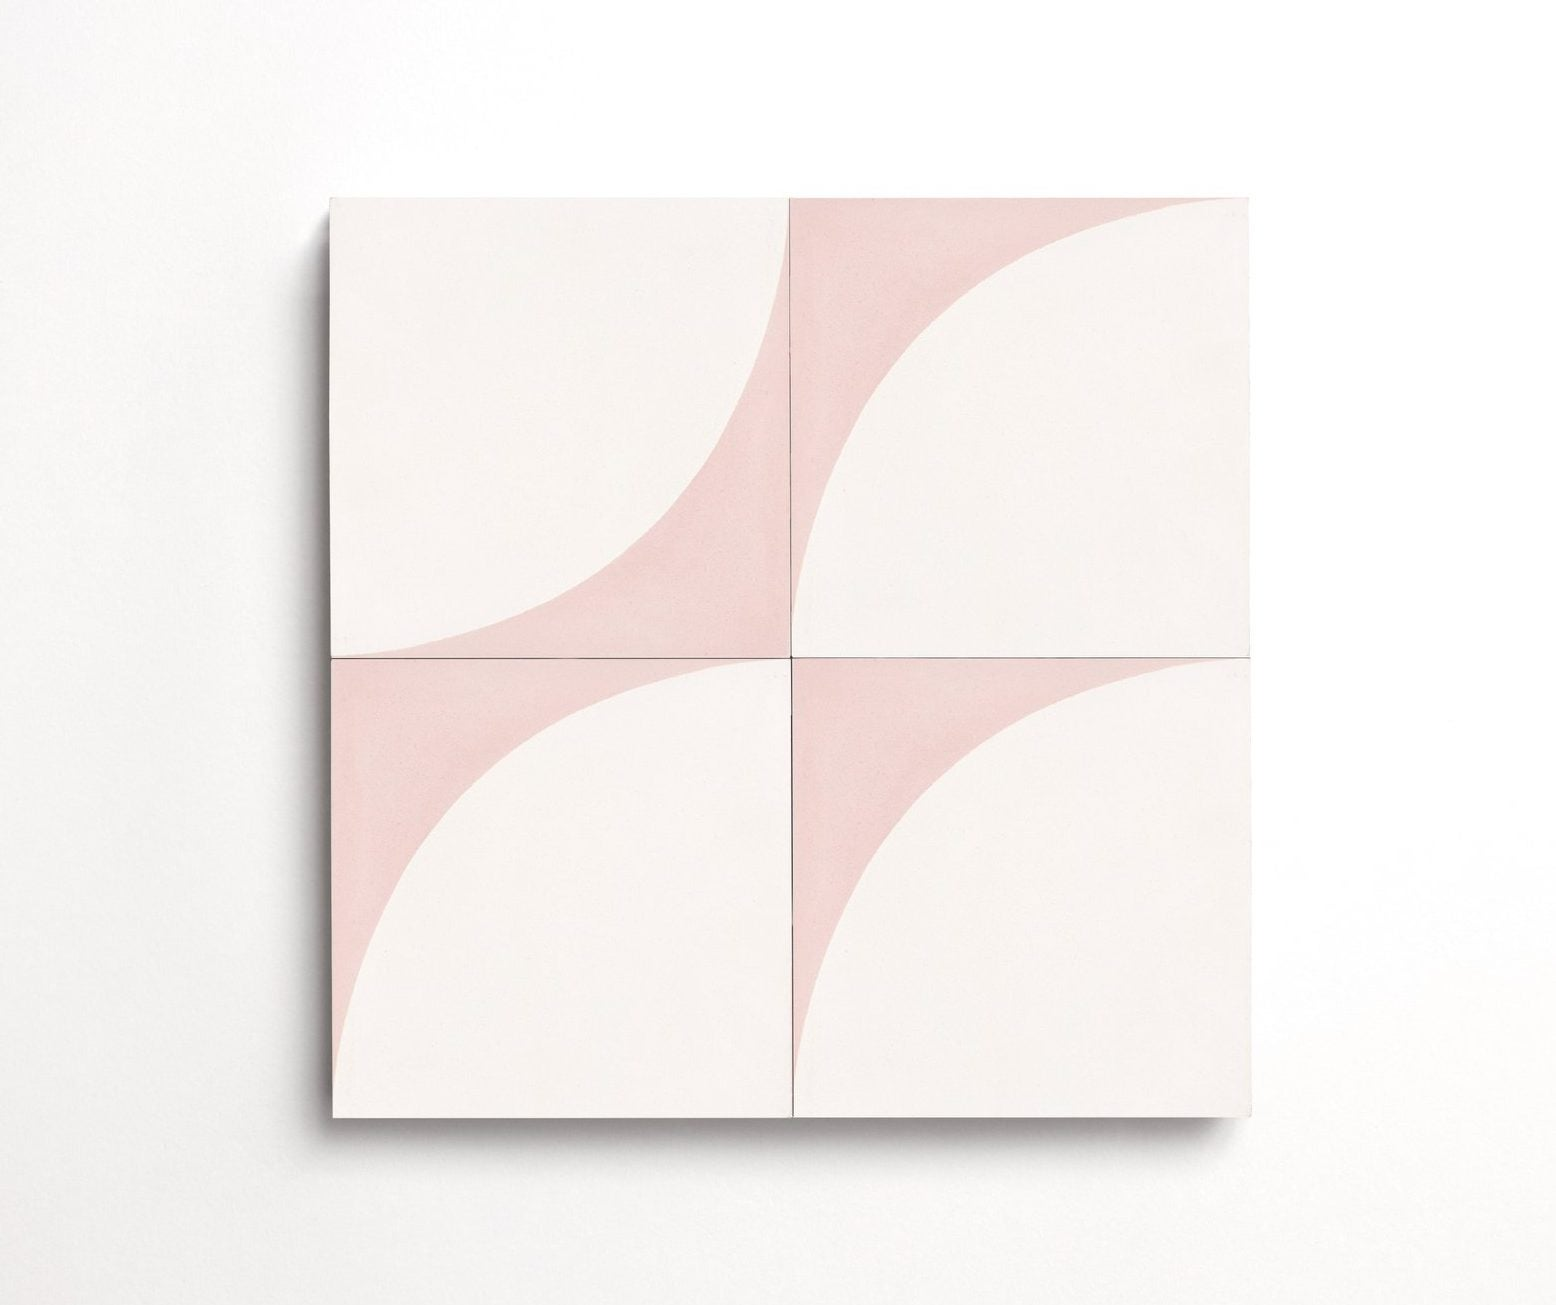 cle_tile_cement_summer19_arc_white_pink_8x8_3600x2400px_final_aerial_main_4up_2048x2048